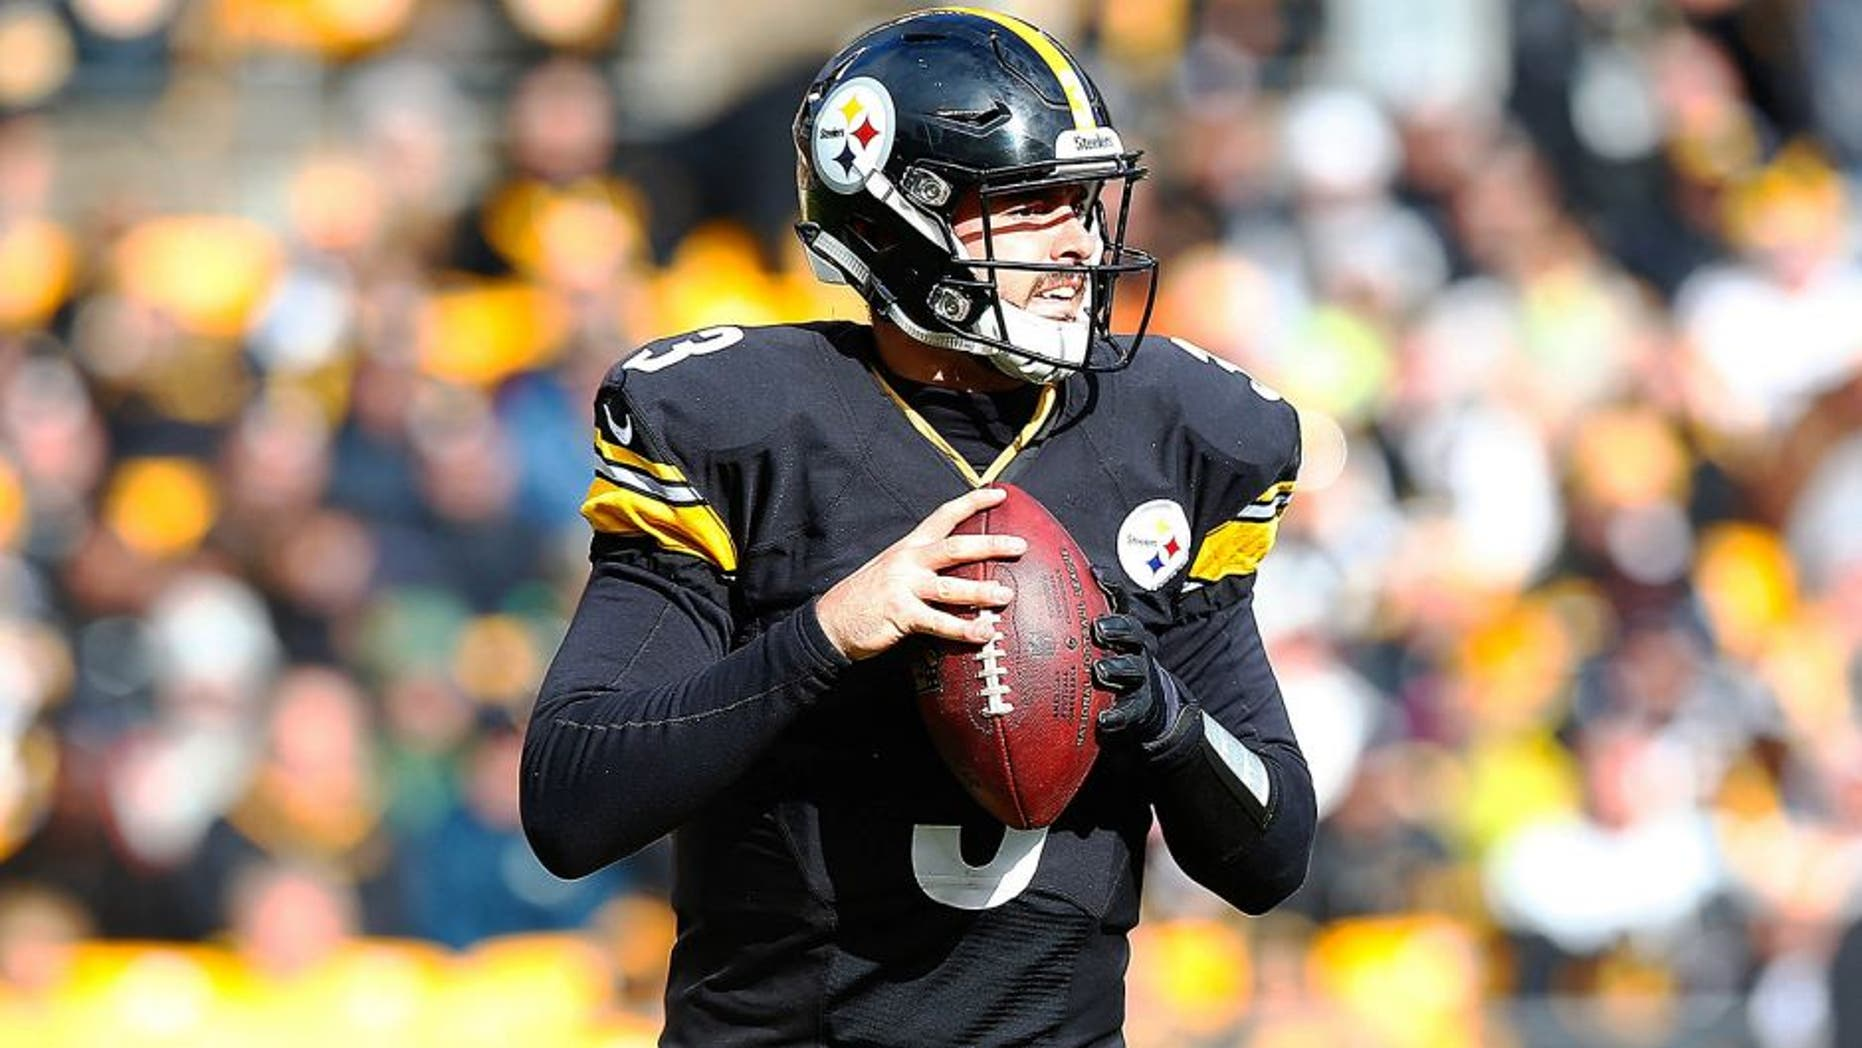 PITTSBURGH, PA - OCTOBER 18: Landry Jones #3 of the Pittsburgh Steelers drops back to pass in the second half during the game against the Arizona Cardinals at Heinz Field on October 18, 2015 in Pittsburgh, Pennsylvania. (Photo by Jared Wickerham/Getty Images)